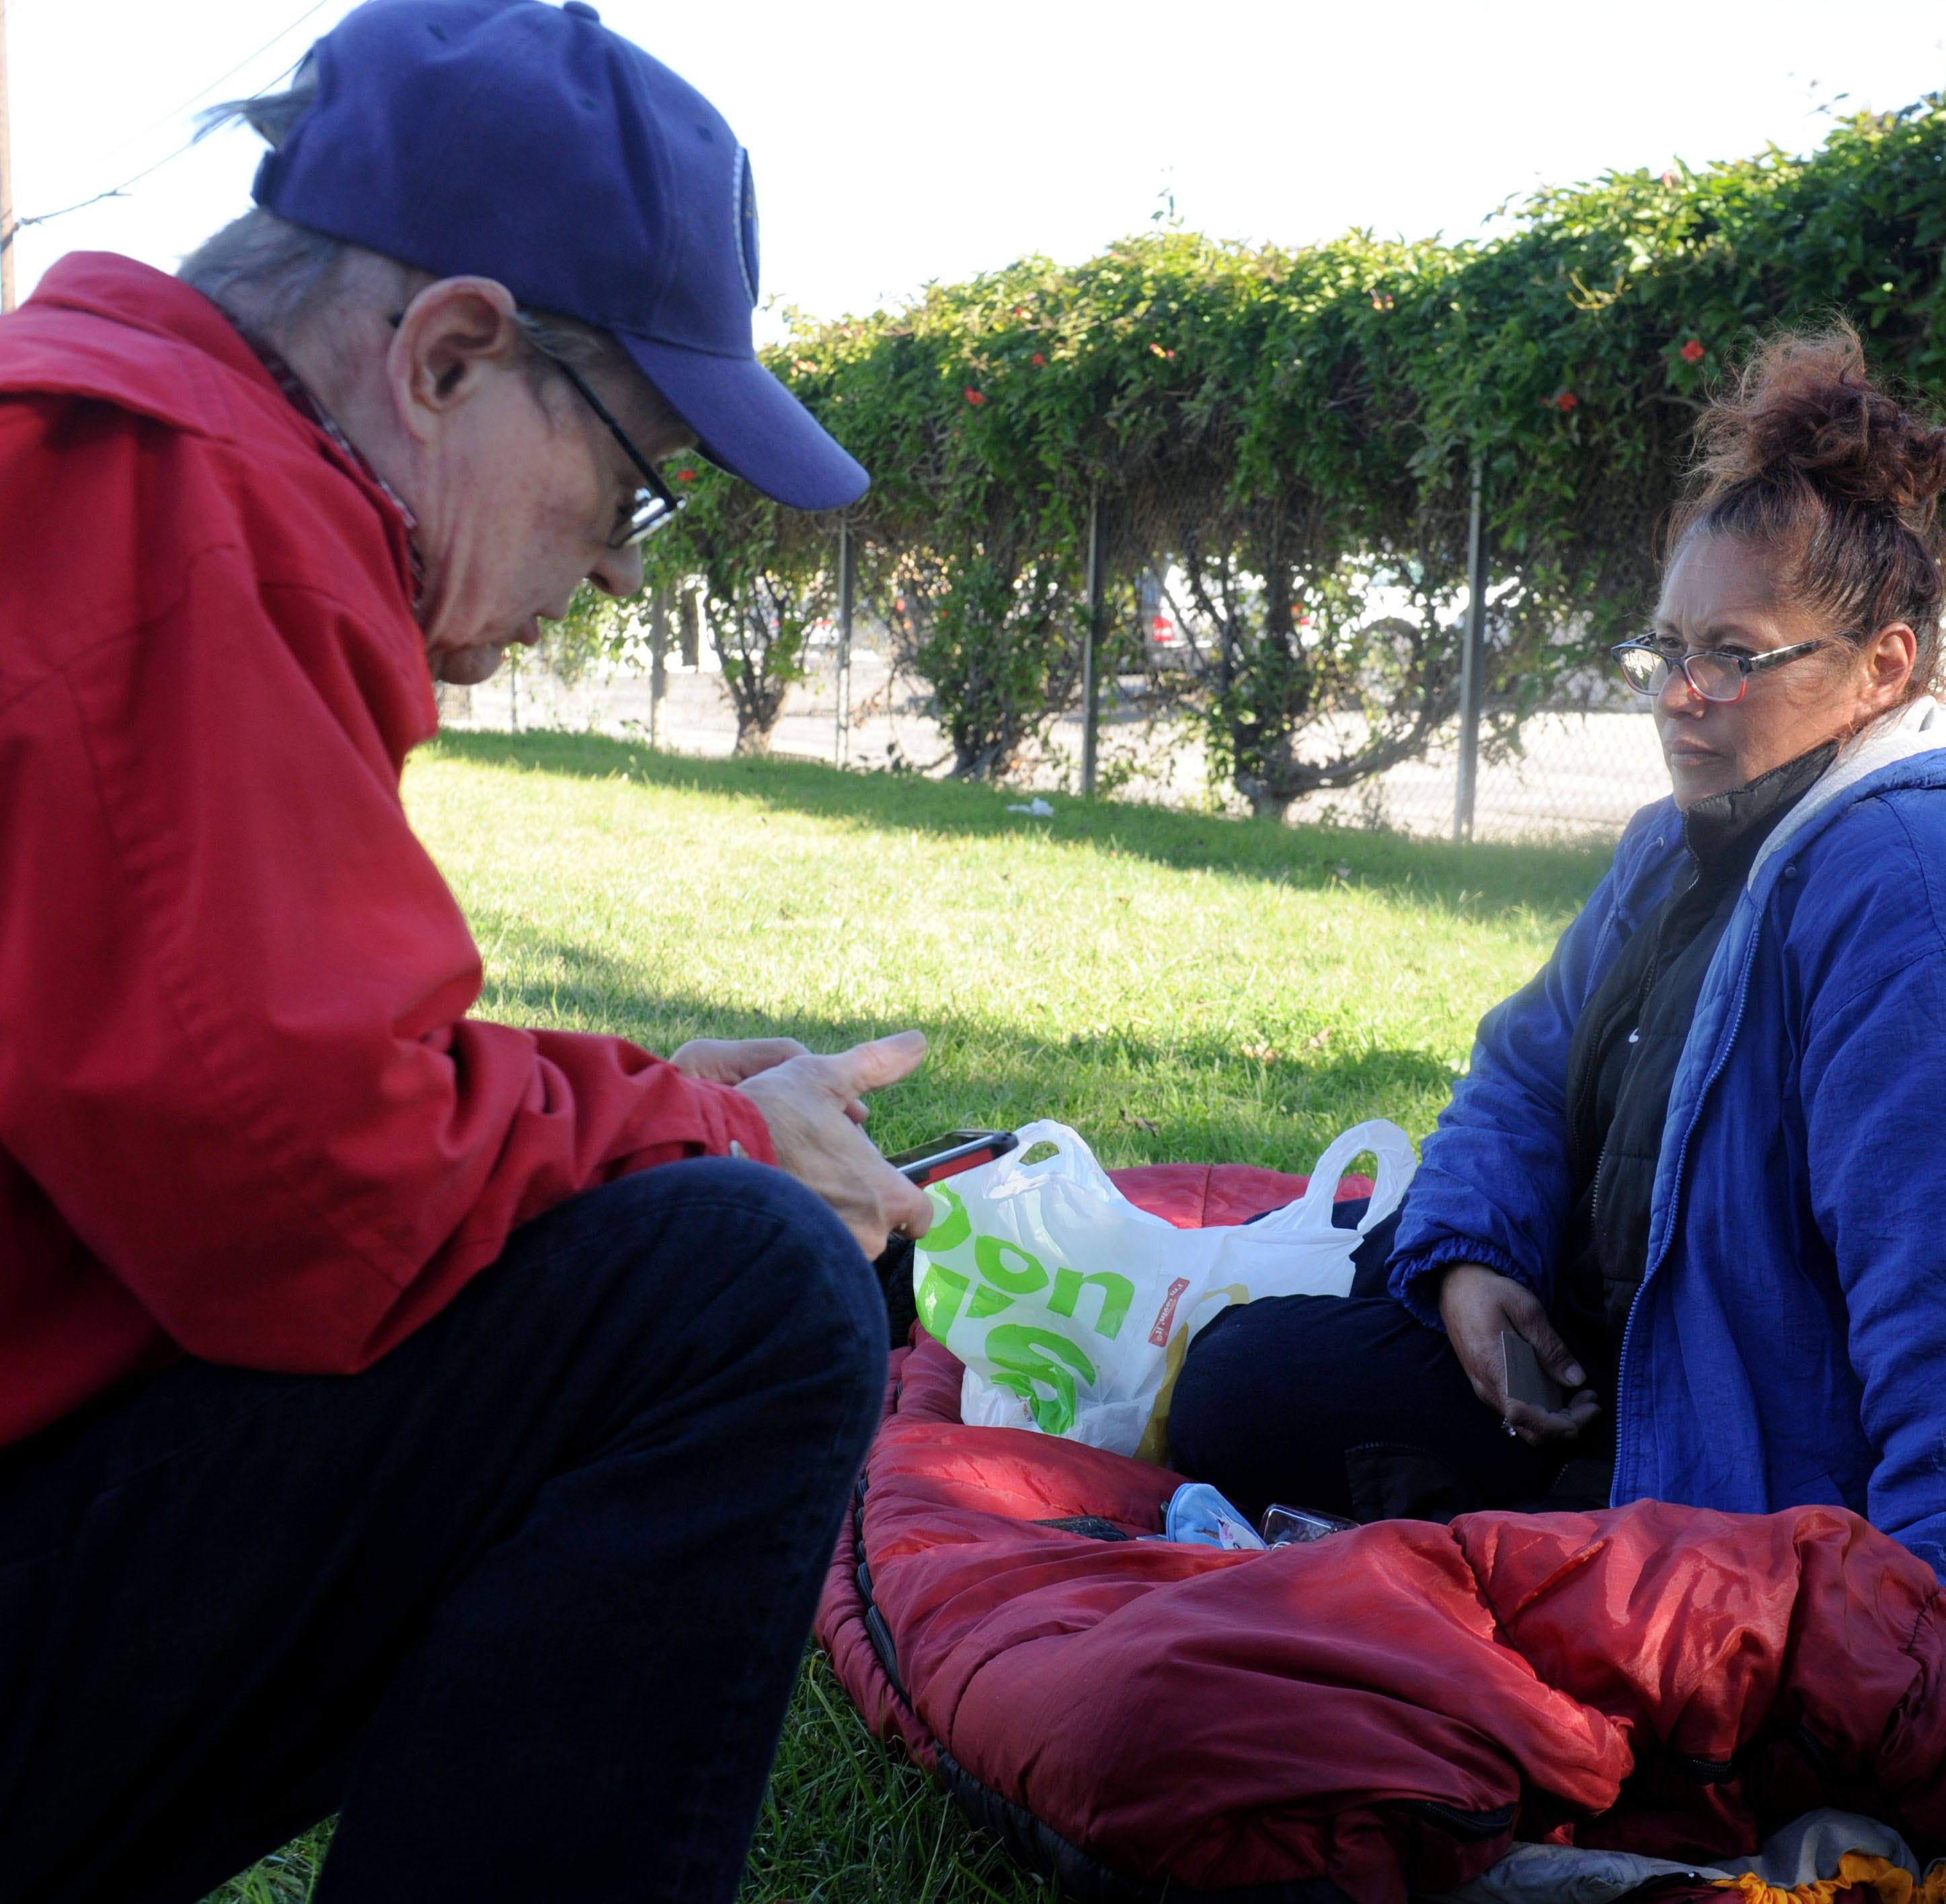 Ventura County's homeless population increased 28 percent, rising rents and fires linked